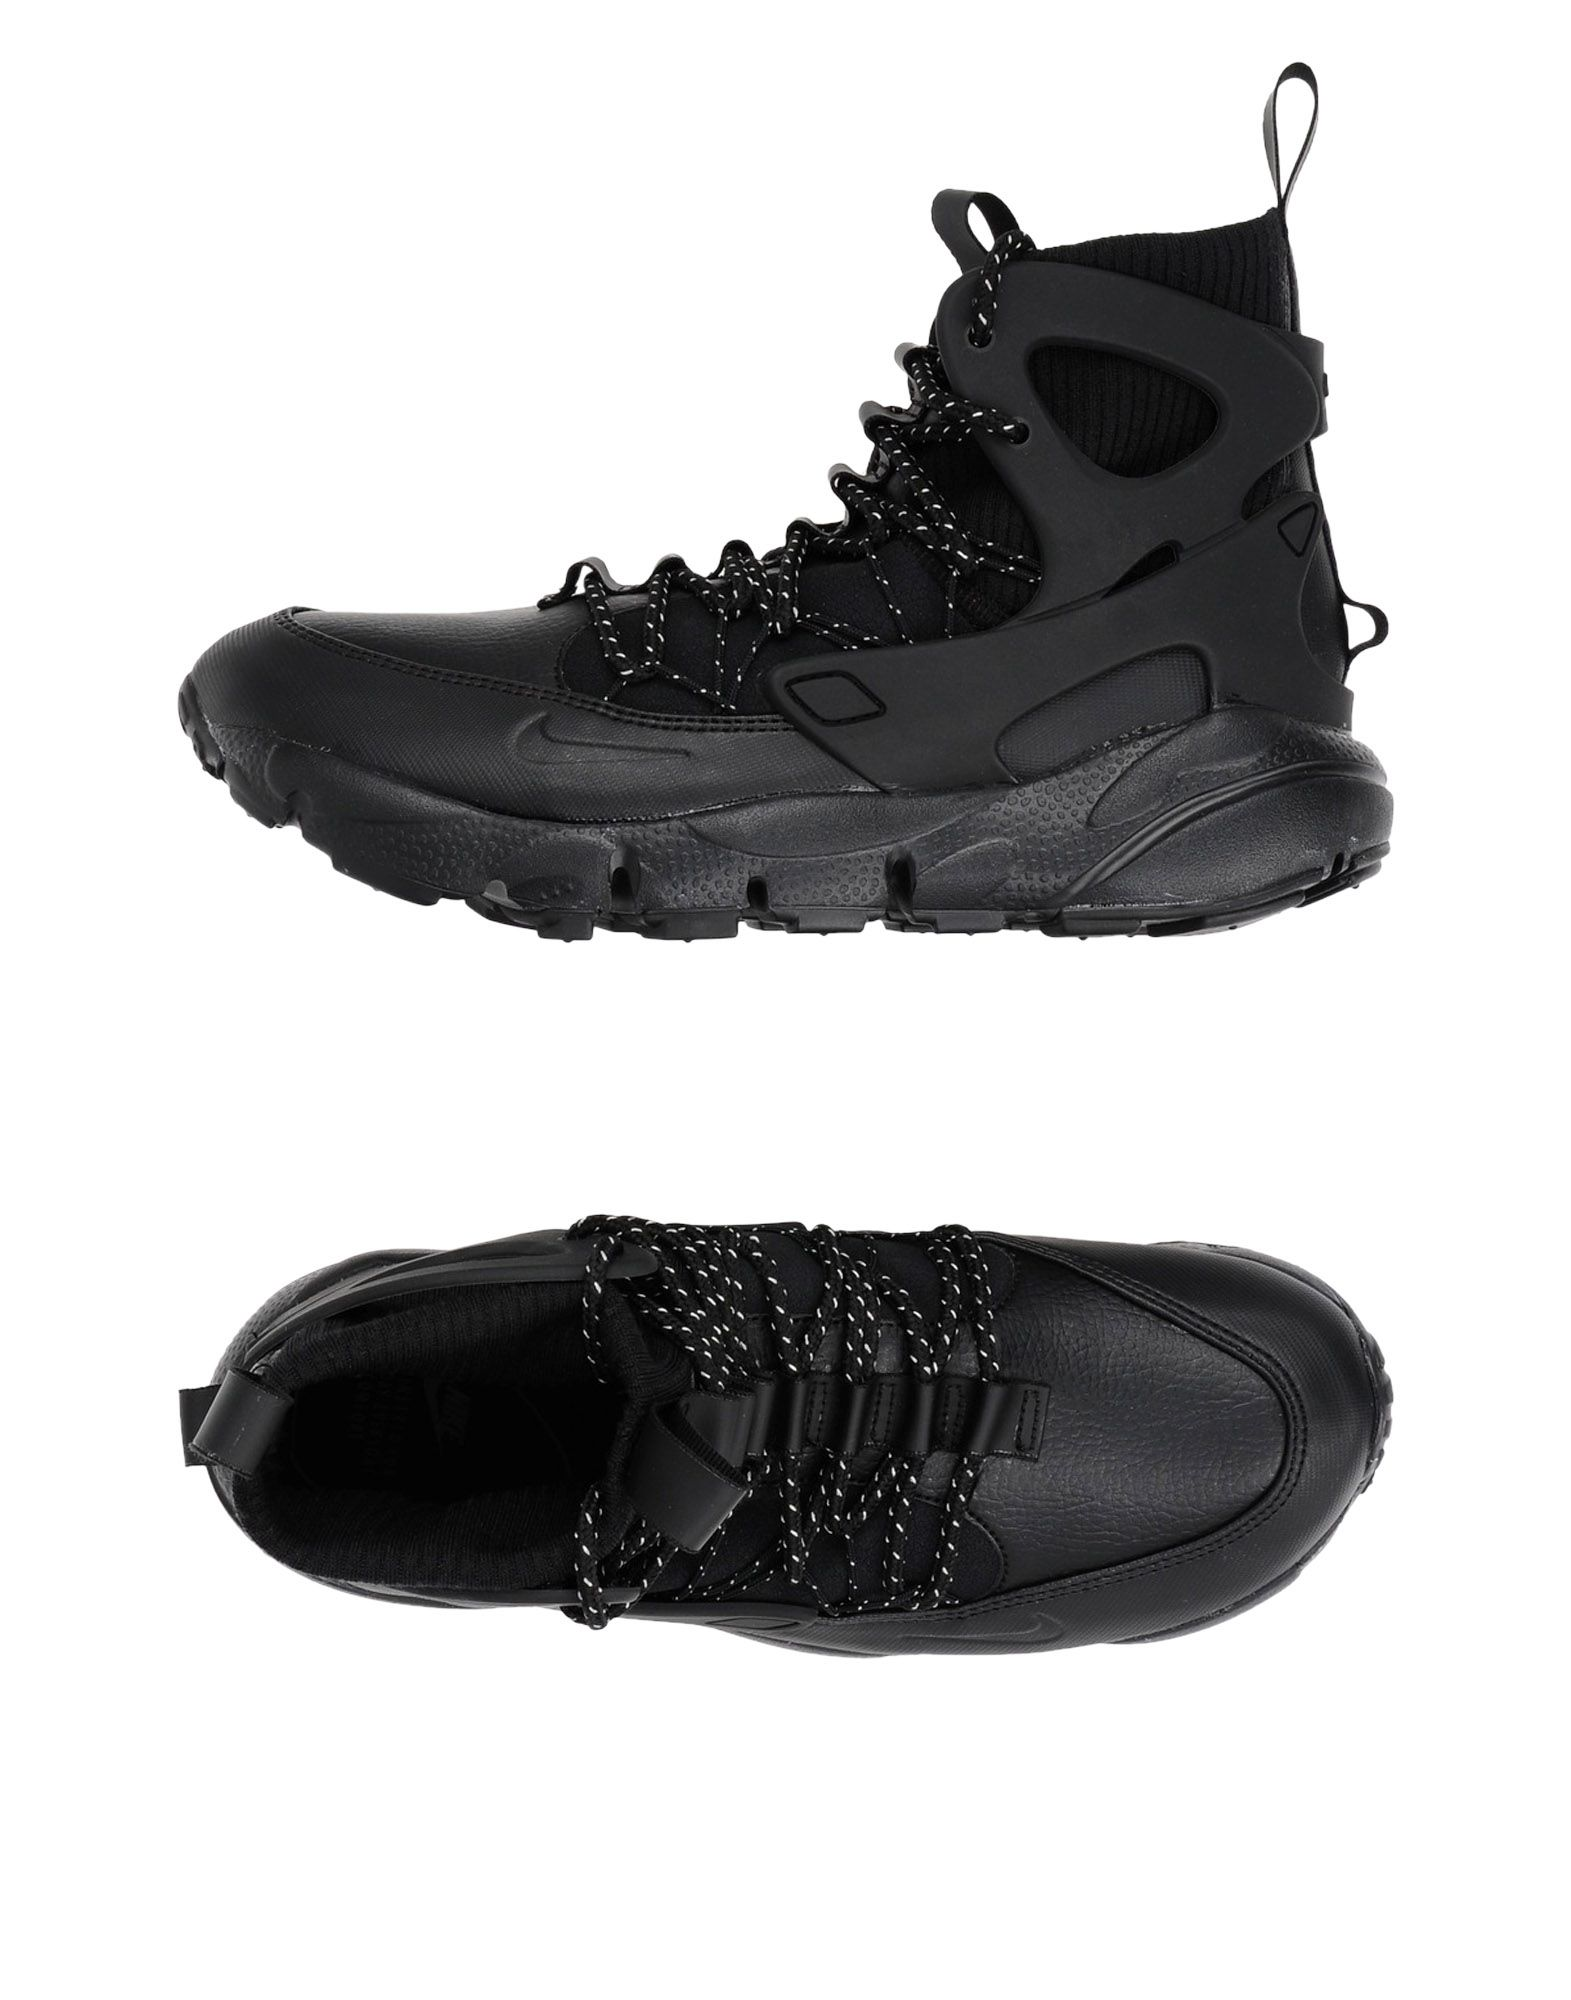 Baskets Nike Air Footscape Mid - Femme - Baskets Nike Noir Meilleur modèle de vente